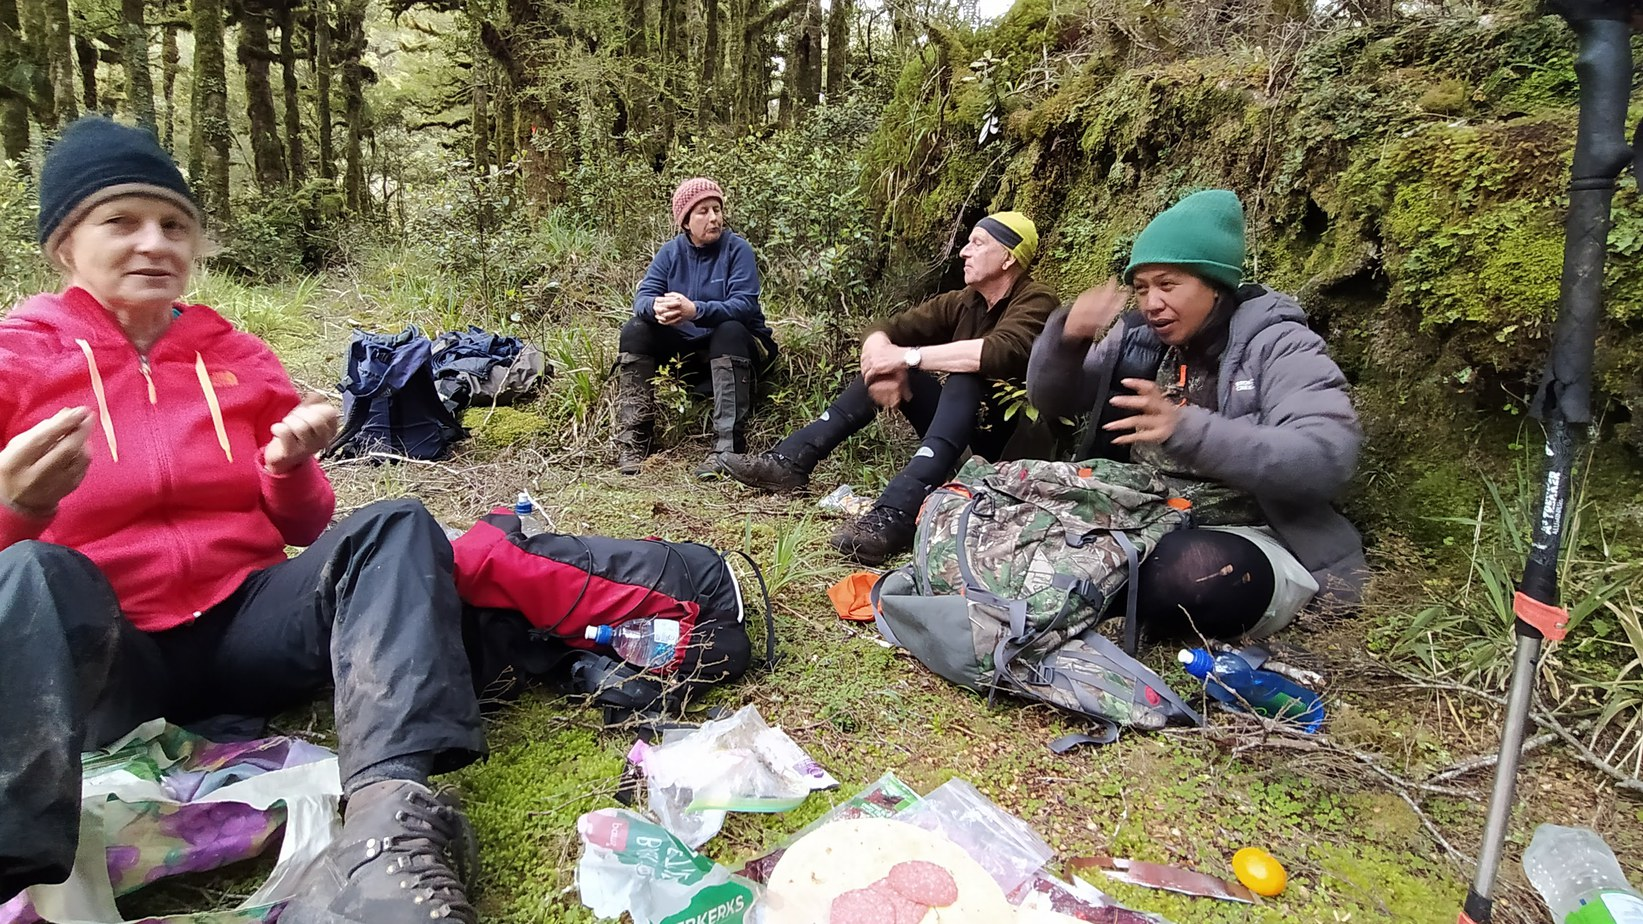 Four people with hiking gear on sitting in the bush having a picnic lunch